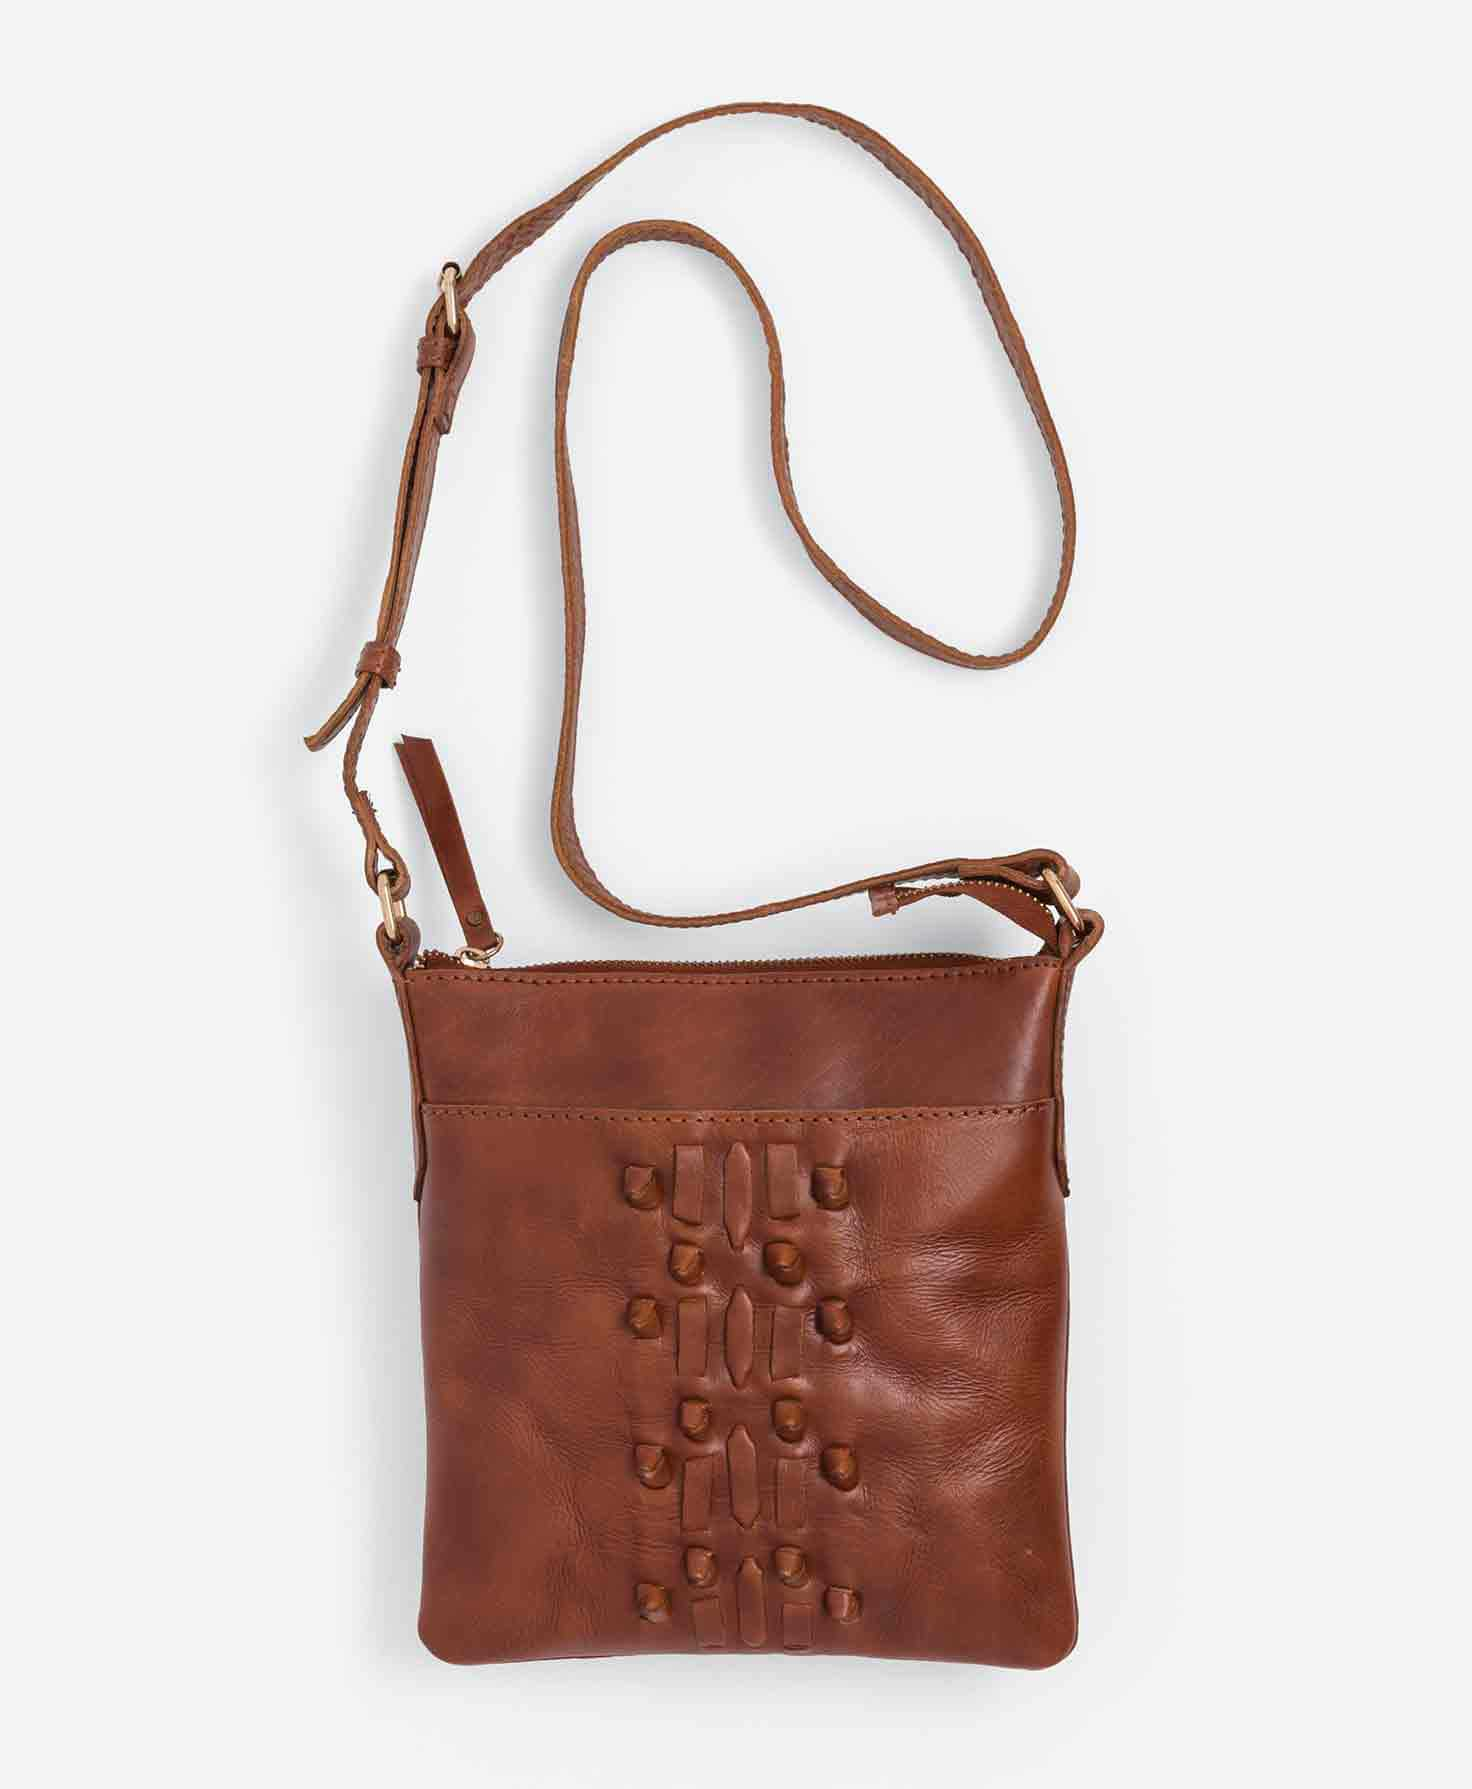 54f634dba3 Indus Leather Crossbody  Say HELLO to your teen s new favorite purse. This  versatile leather bag has a strap that can be lengthened or shortened.